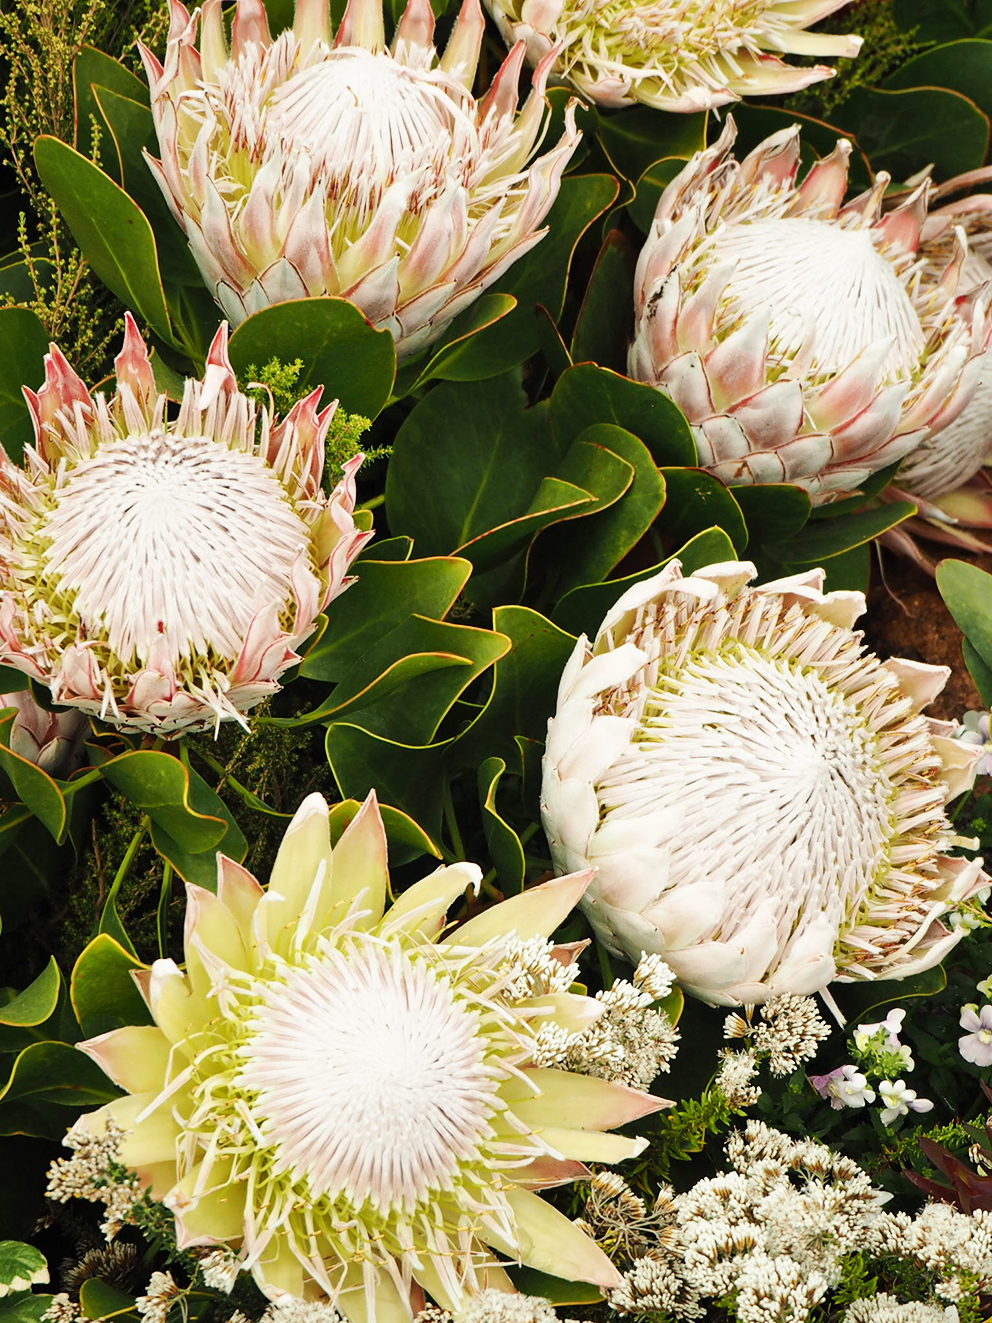 French For Pineapple Blog - RHS Chelsea Flower Show 2017 - White Proteas